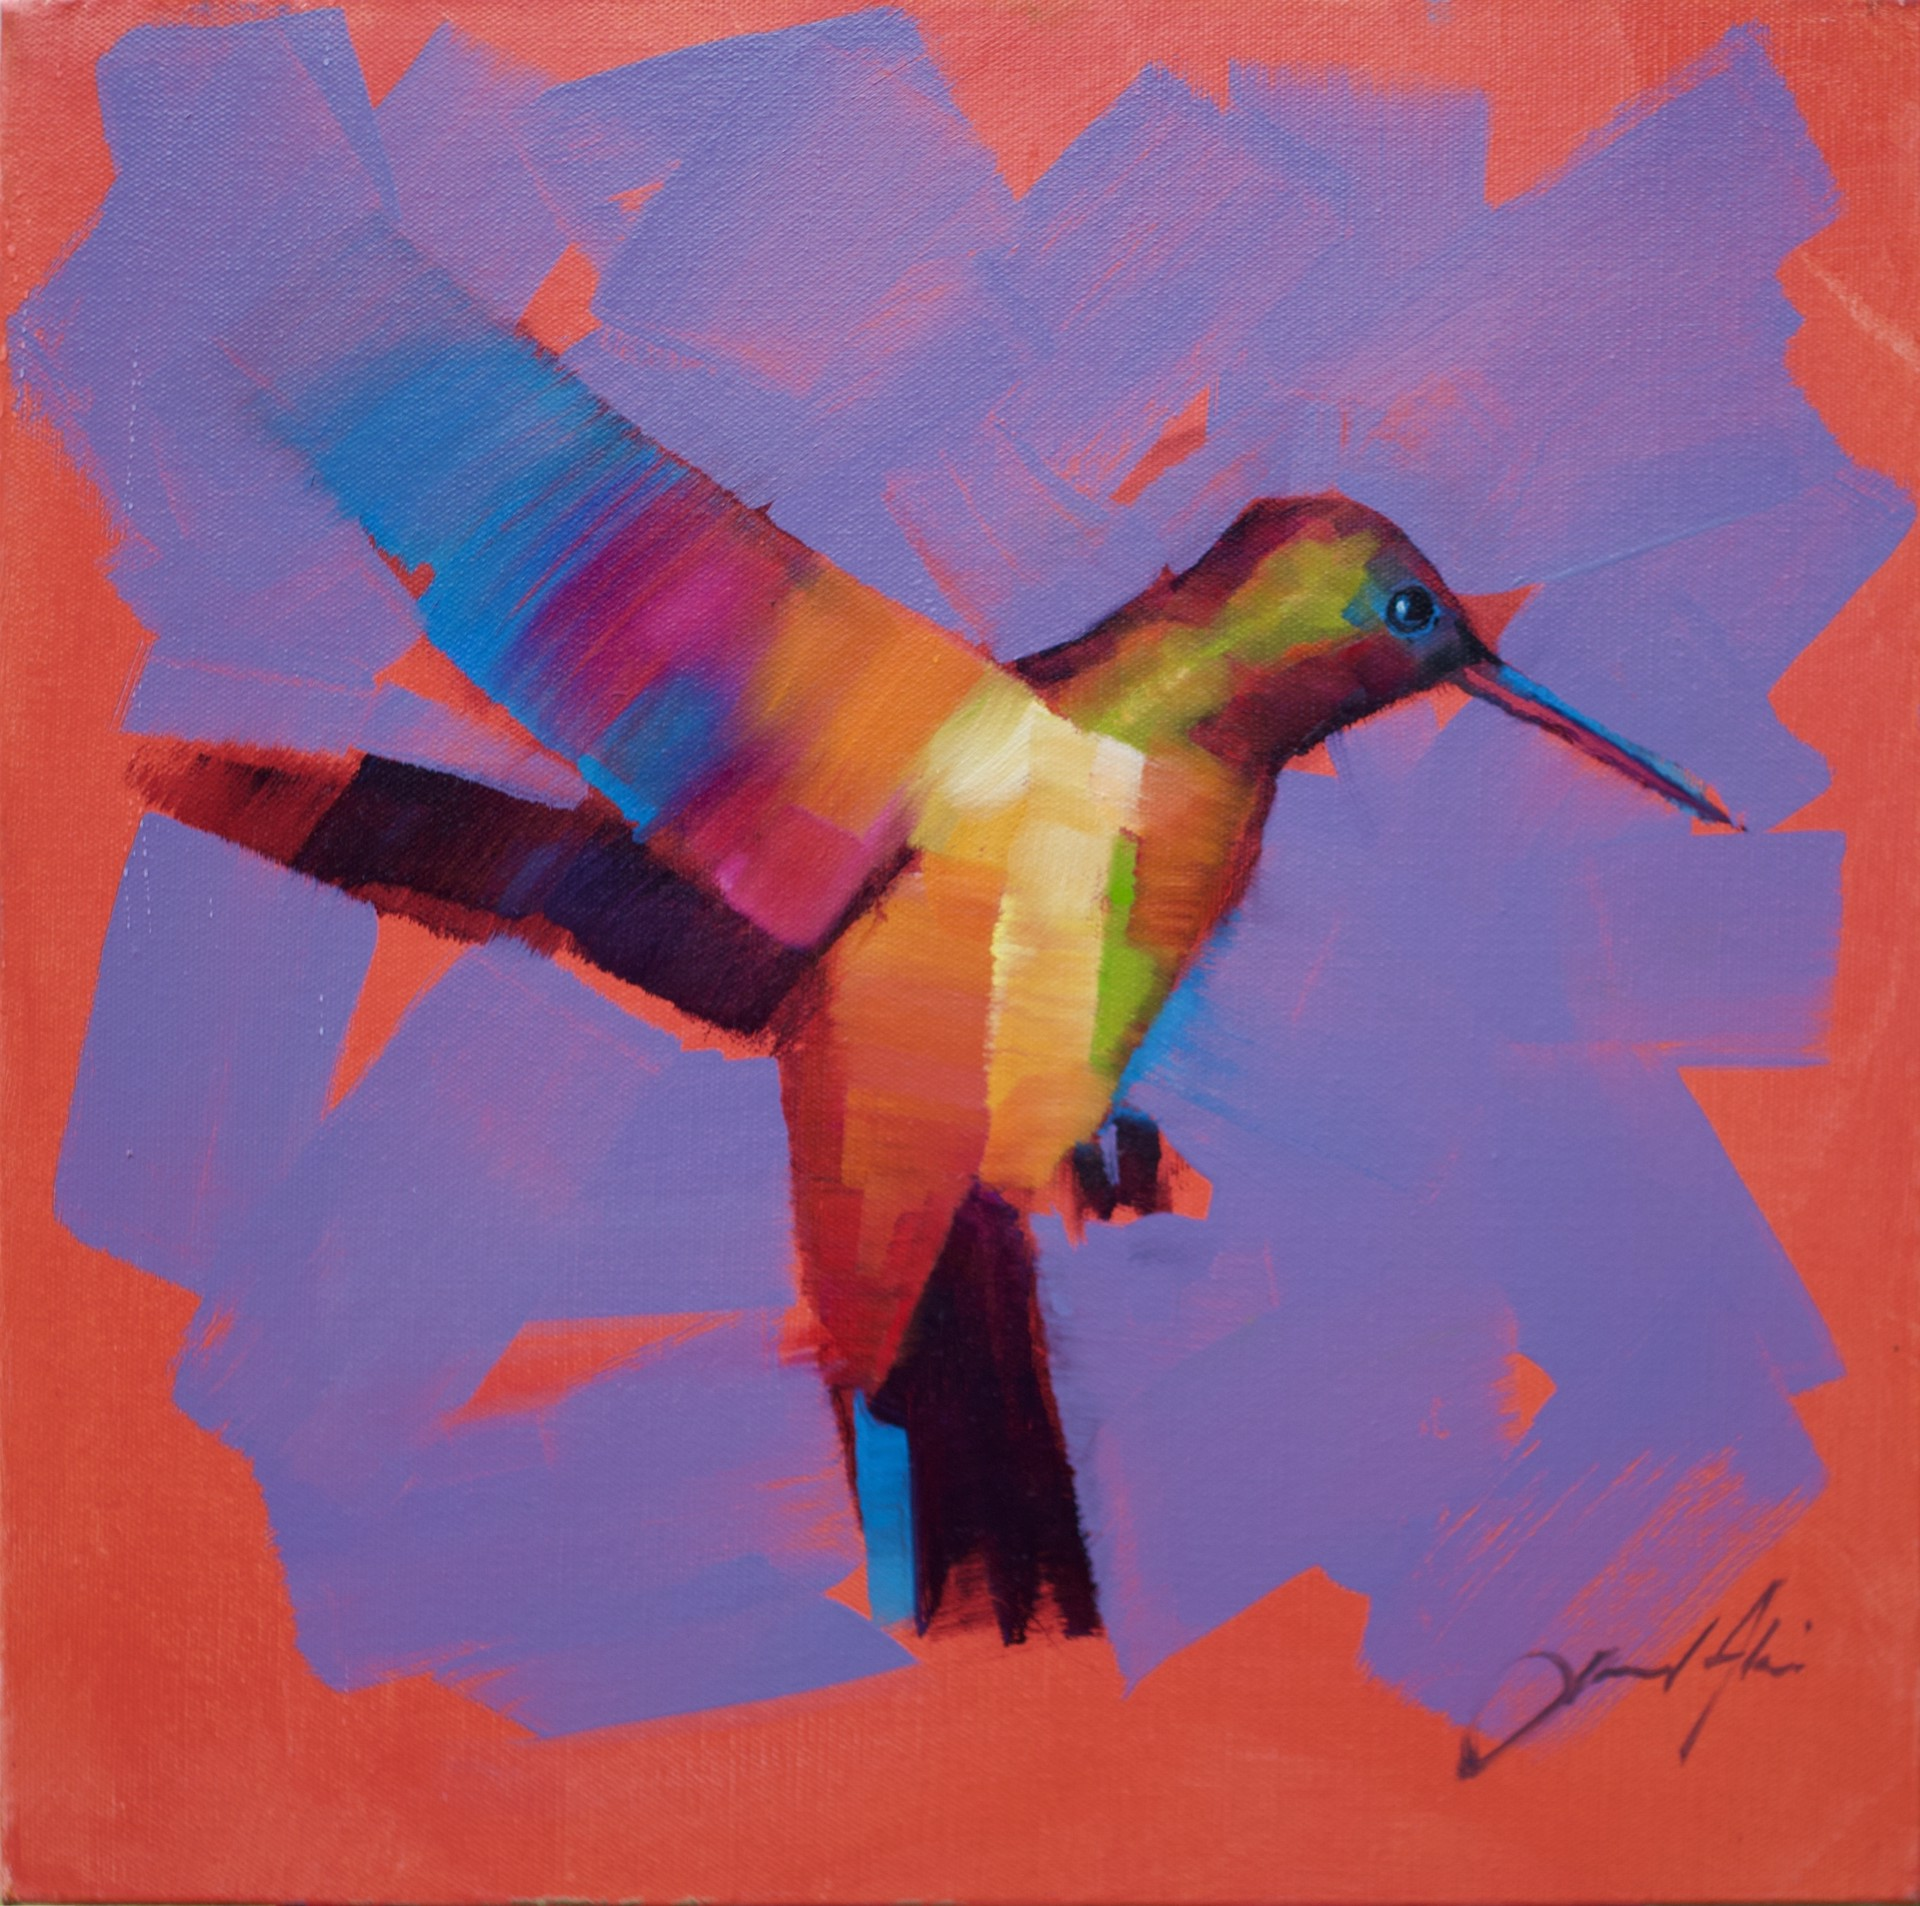 Hummingbird XIV by Jamel Akib